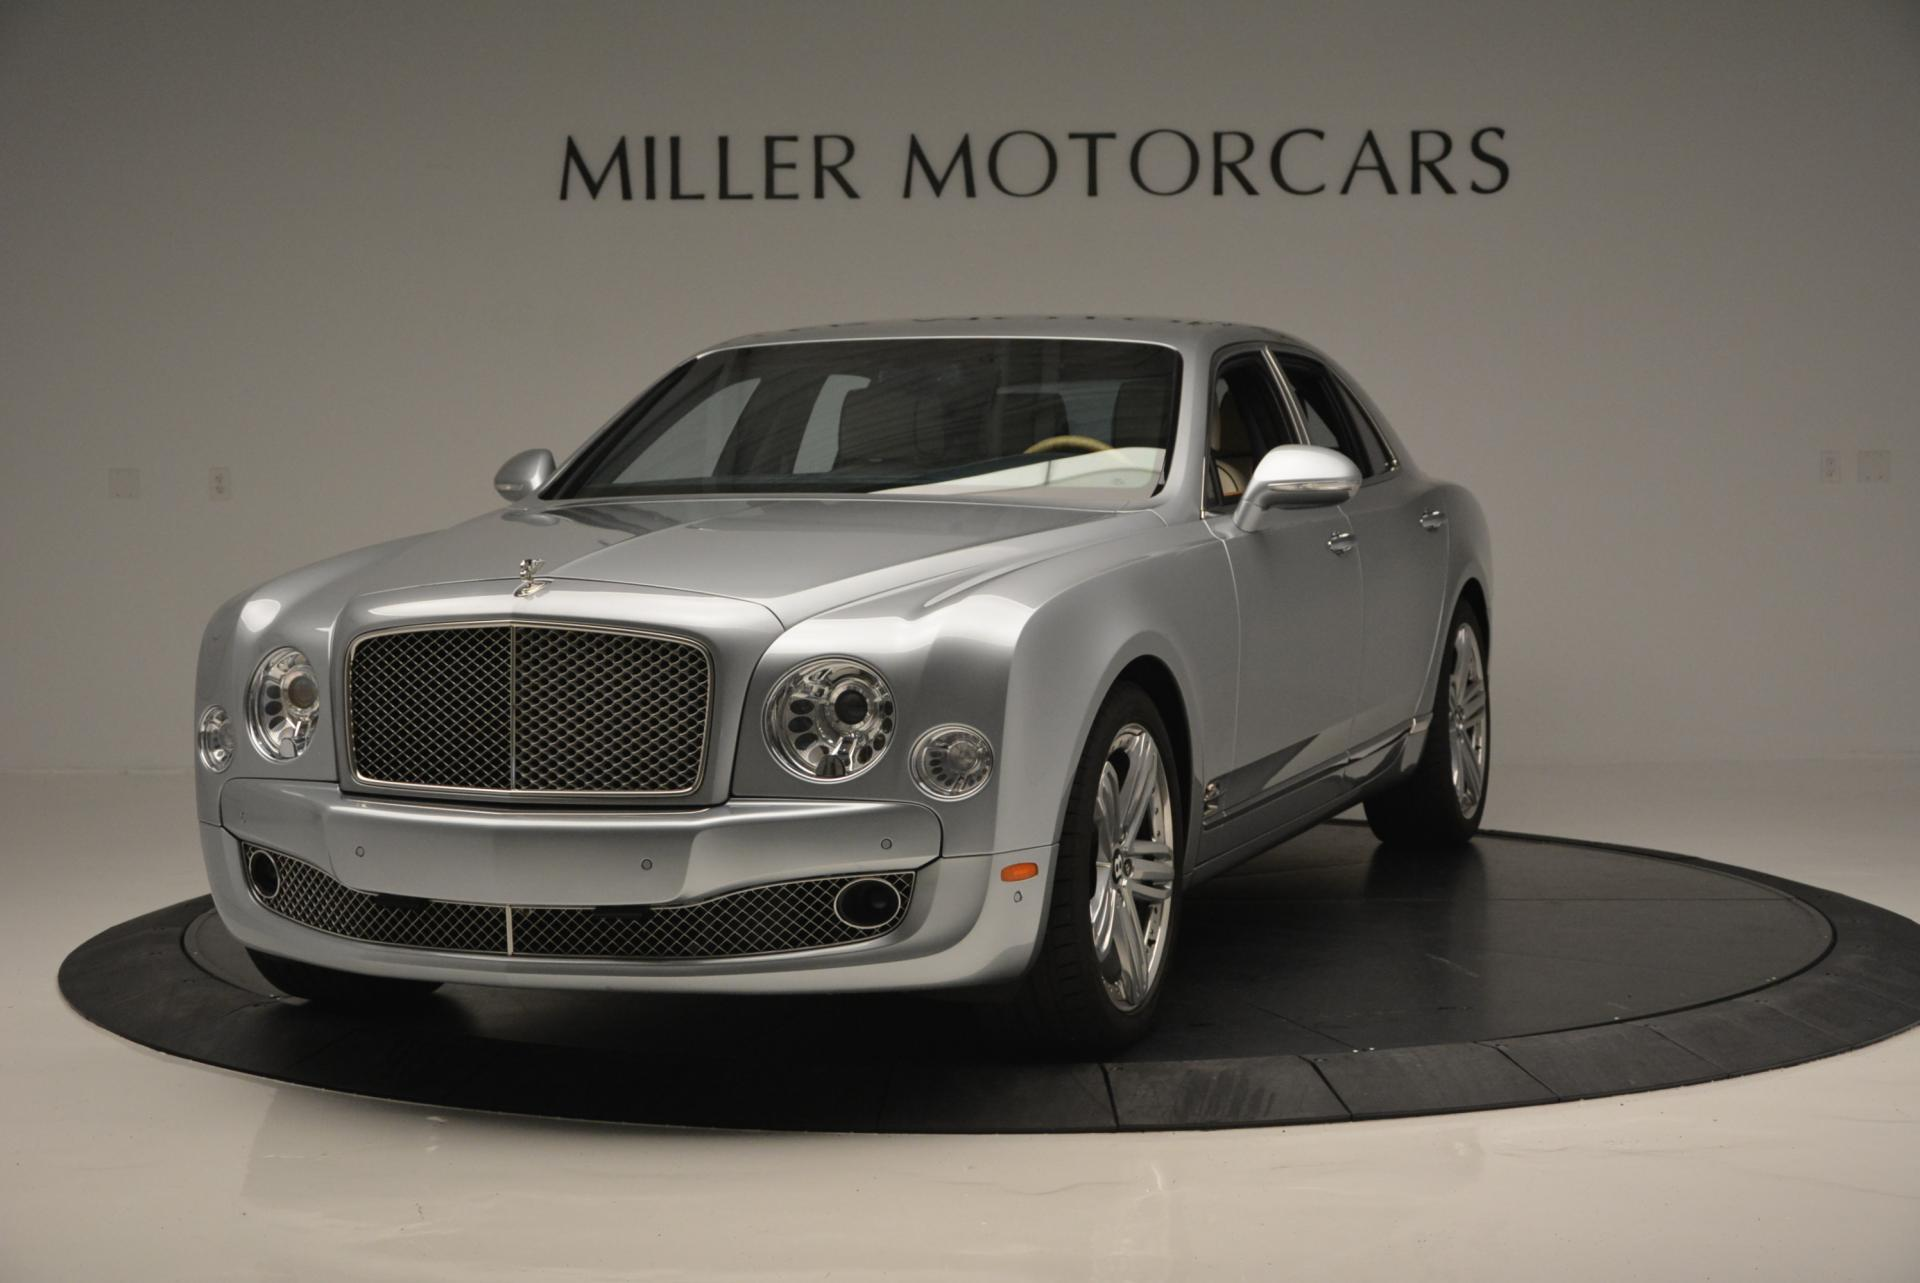 Used 2012 Bentley Mulsanne for sale Sold at Aston Martin of Greenwich in Greenwich CT 06830 1